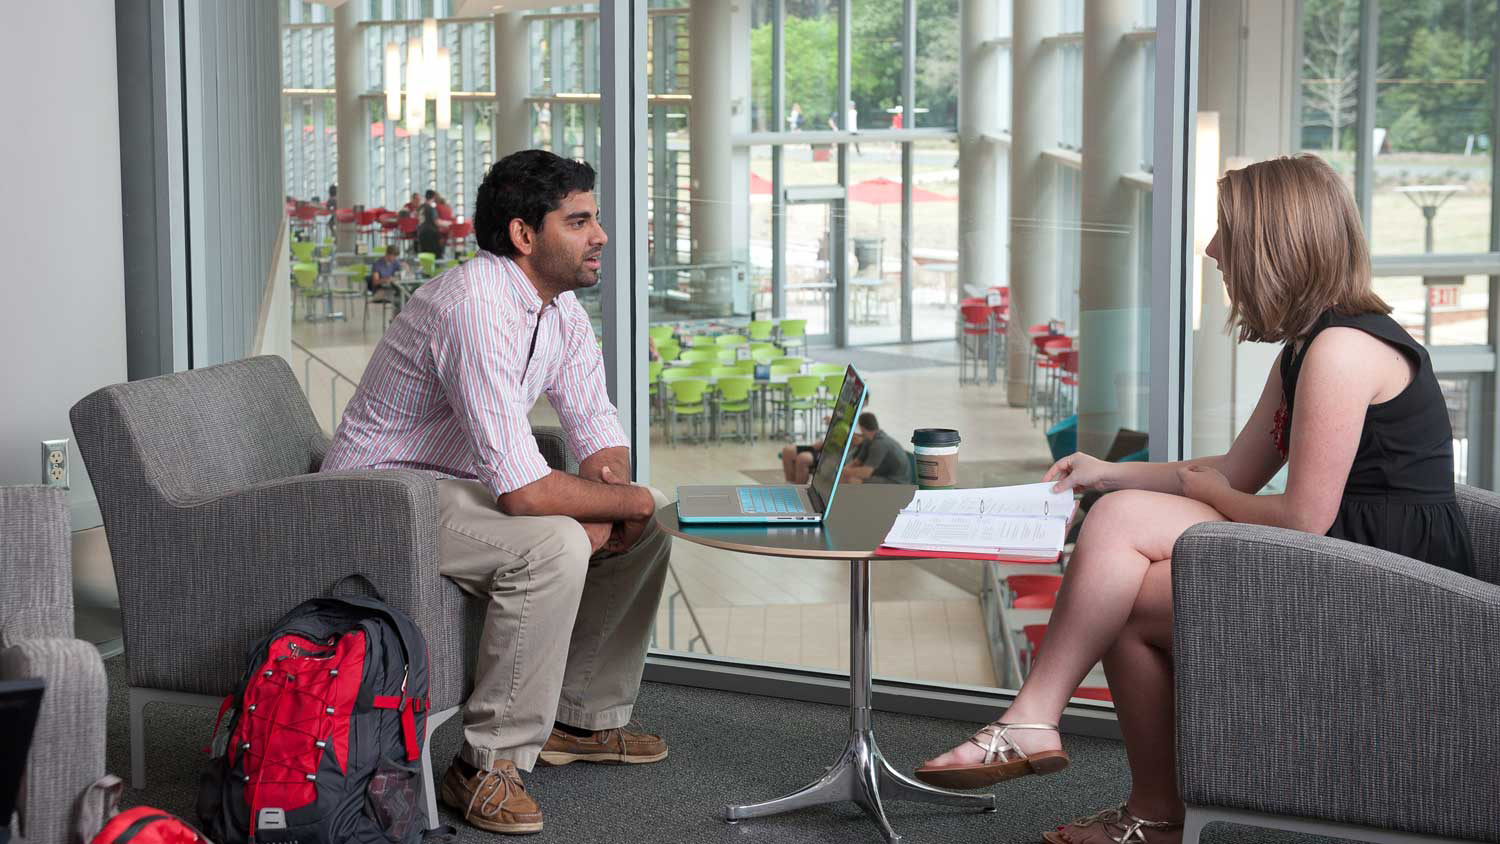 Two People Having a Discussion - Graduate Support -Parks Recreation and Tourism Management NC State